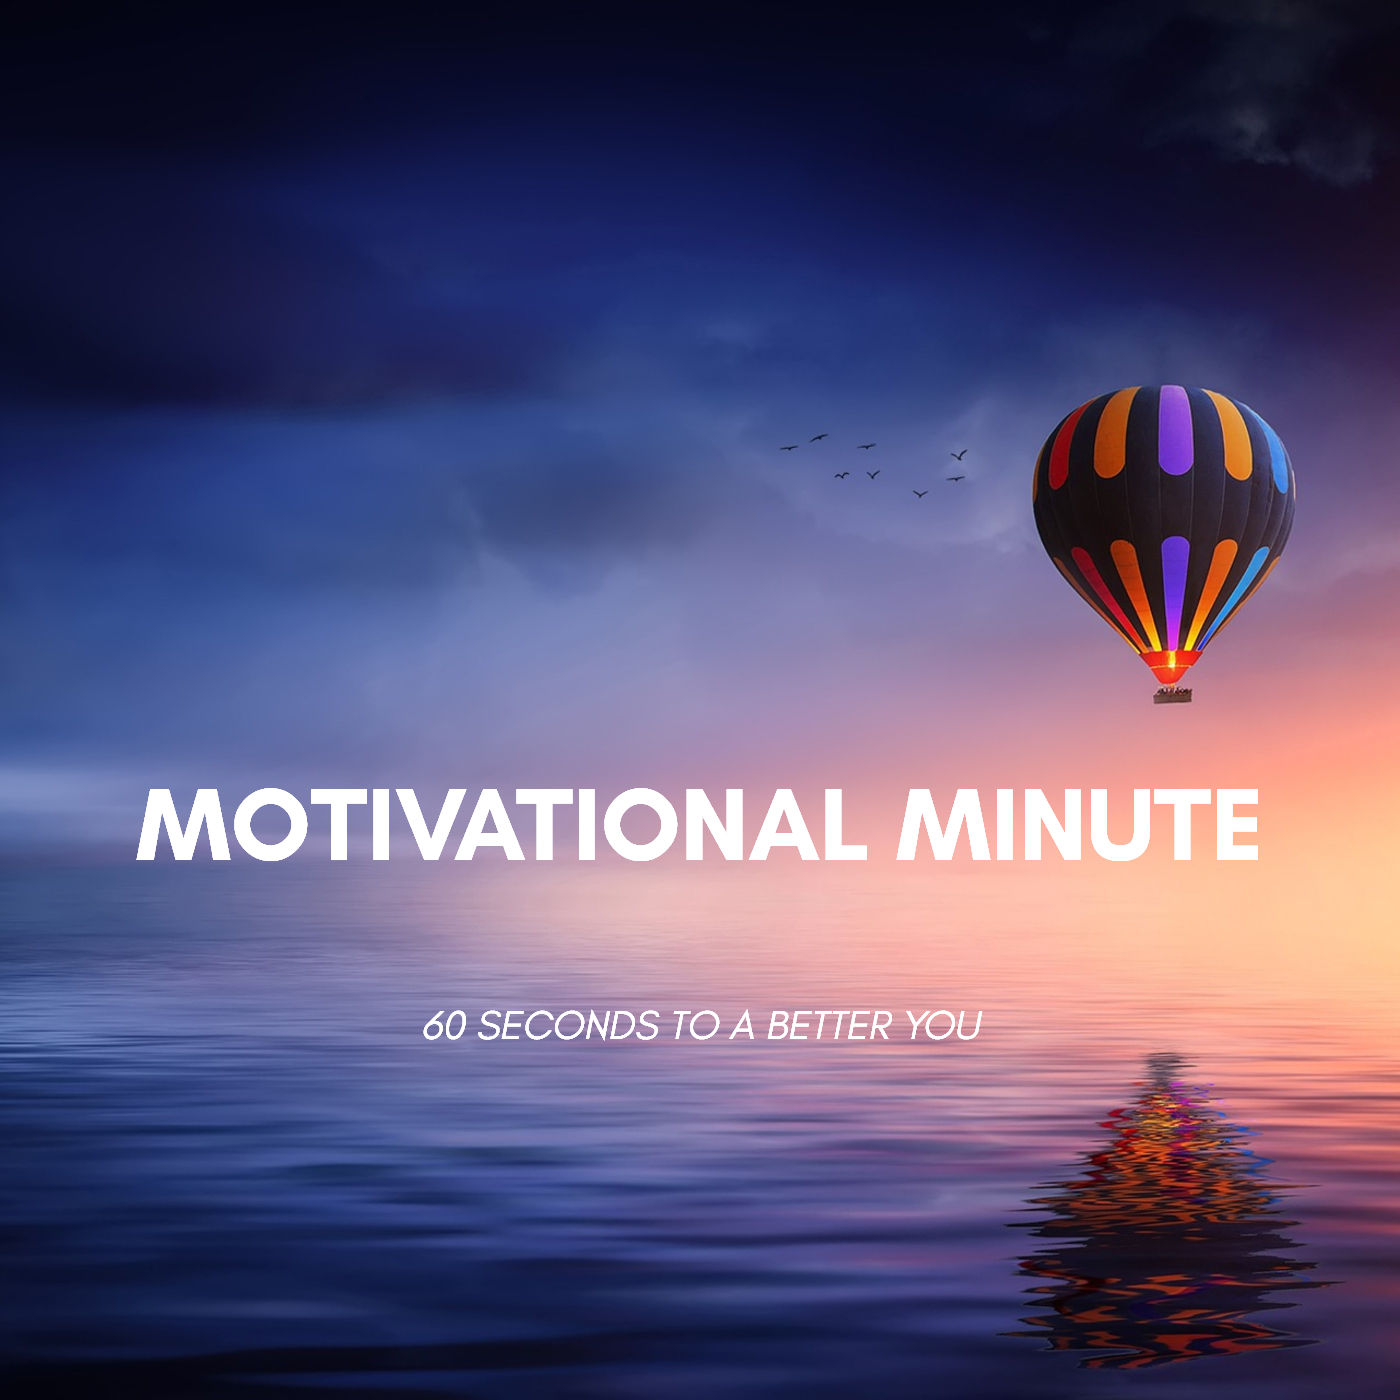 Motivational Minute  60 sec to a better you!